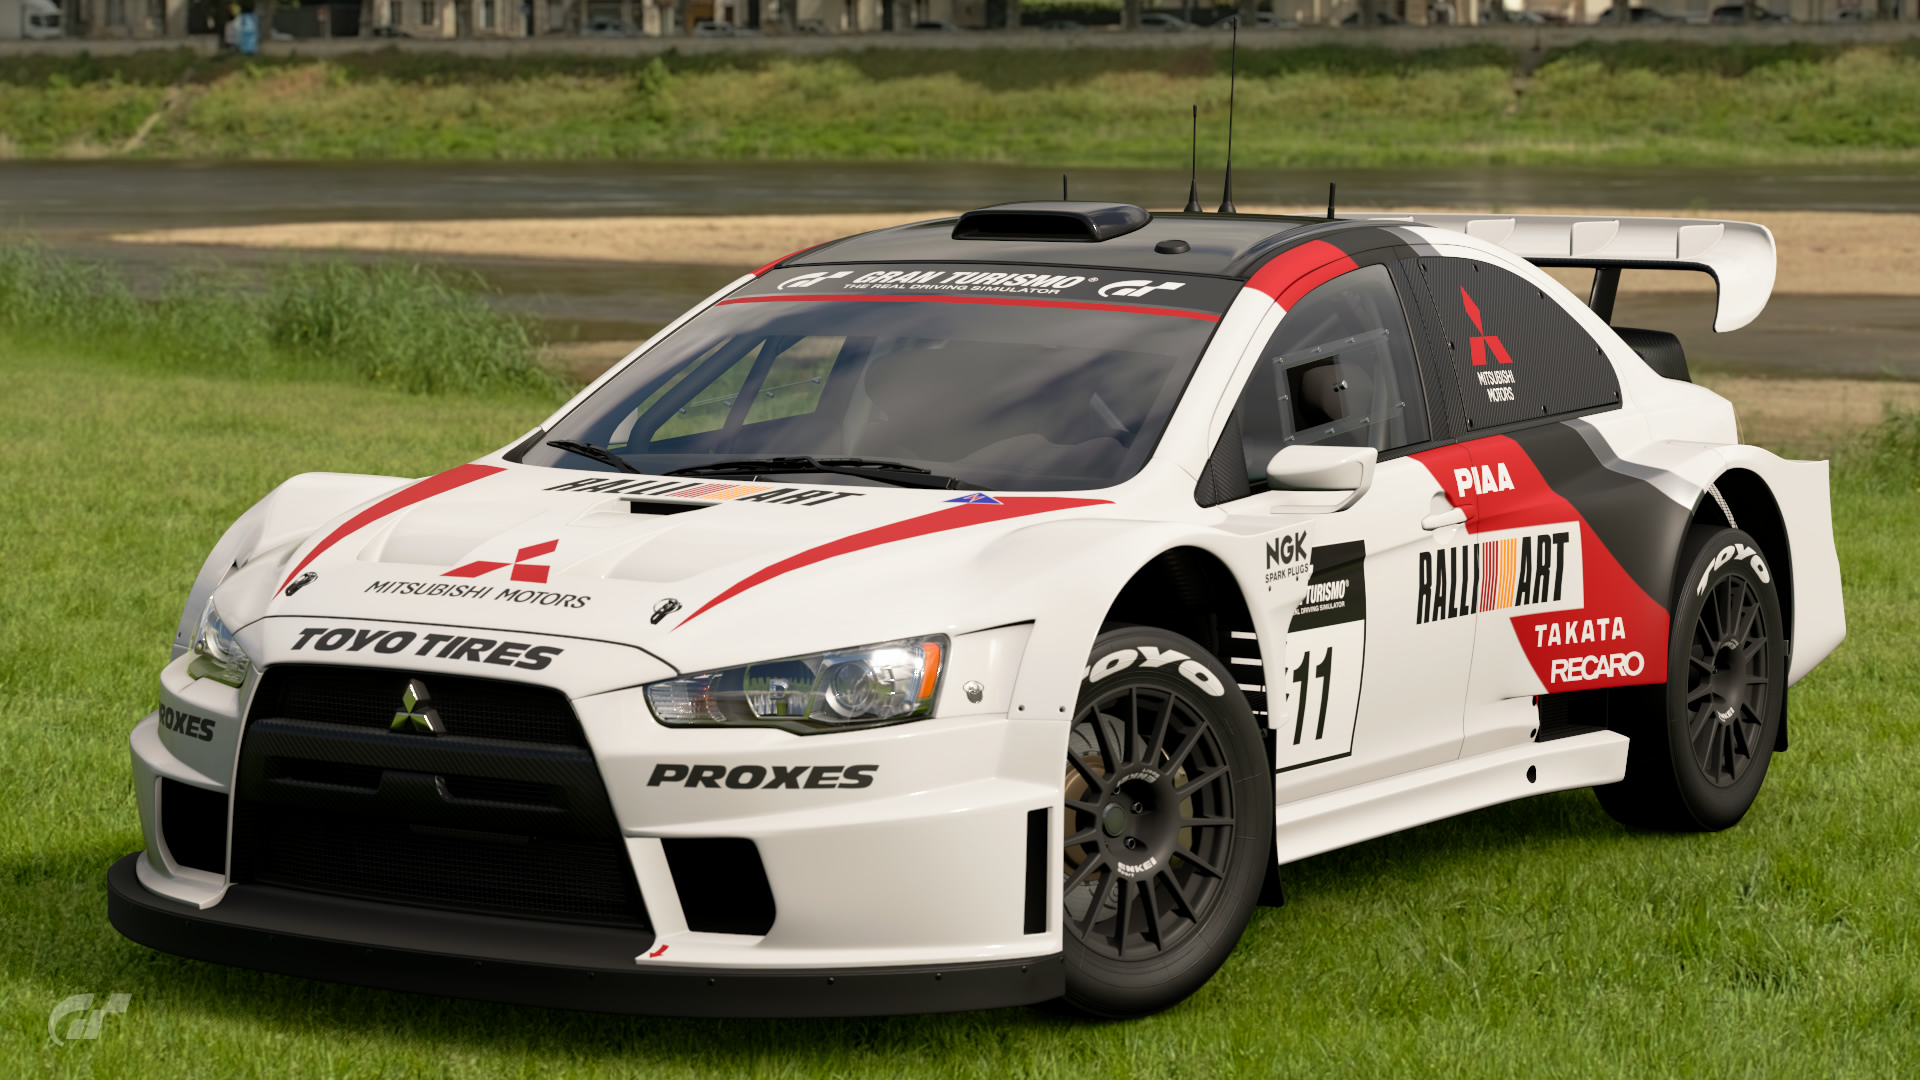 Mitsubishi Lancer Evolution Final Edition Gr.B Rally Car